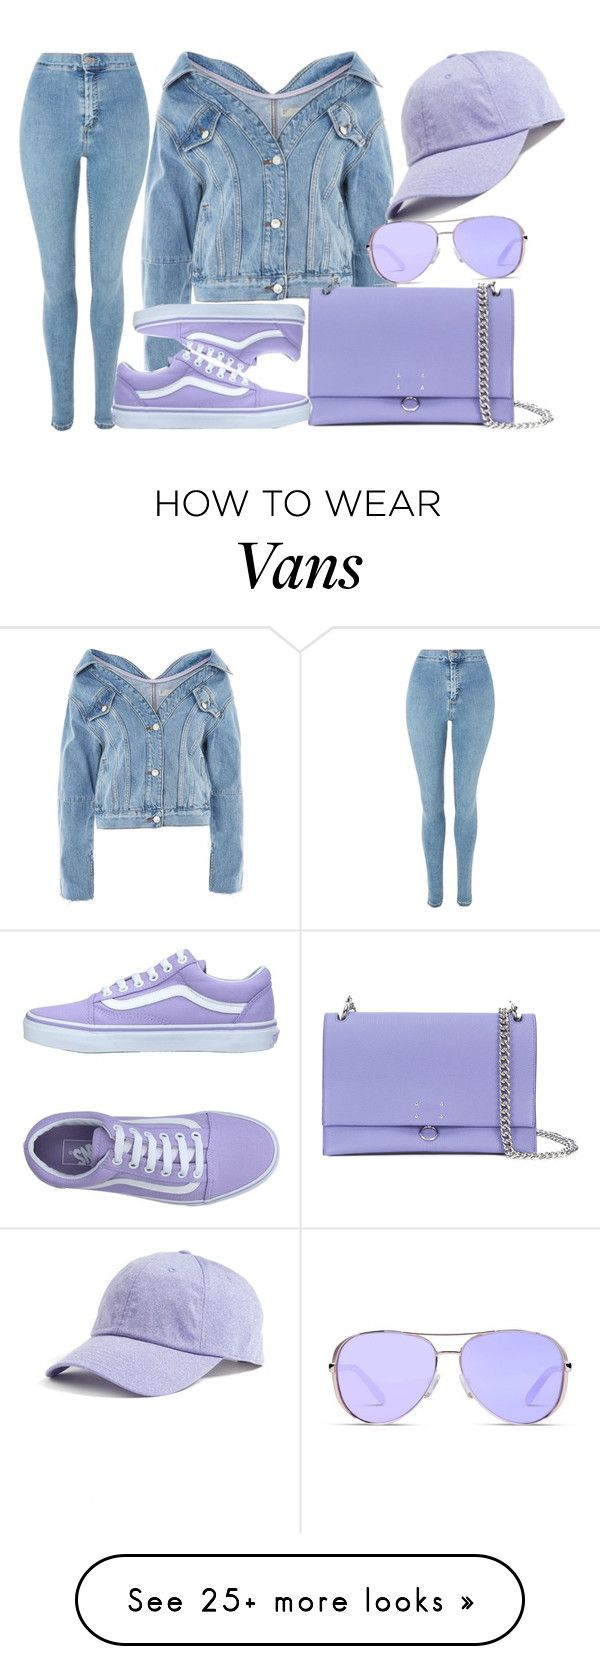 Untitled 2718 By Iamclaudine On Polyvore Featuring Topshop Jil Sander Vans American Needle And Michael Kors Fashion Outfits Outfits For Teens Clothes